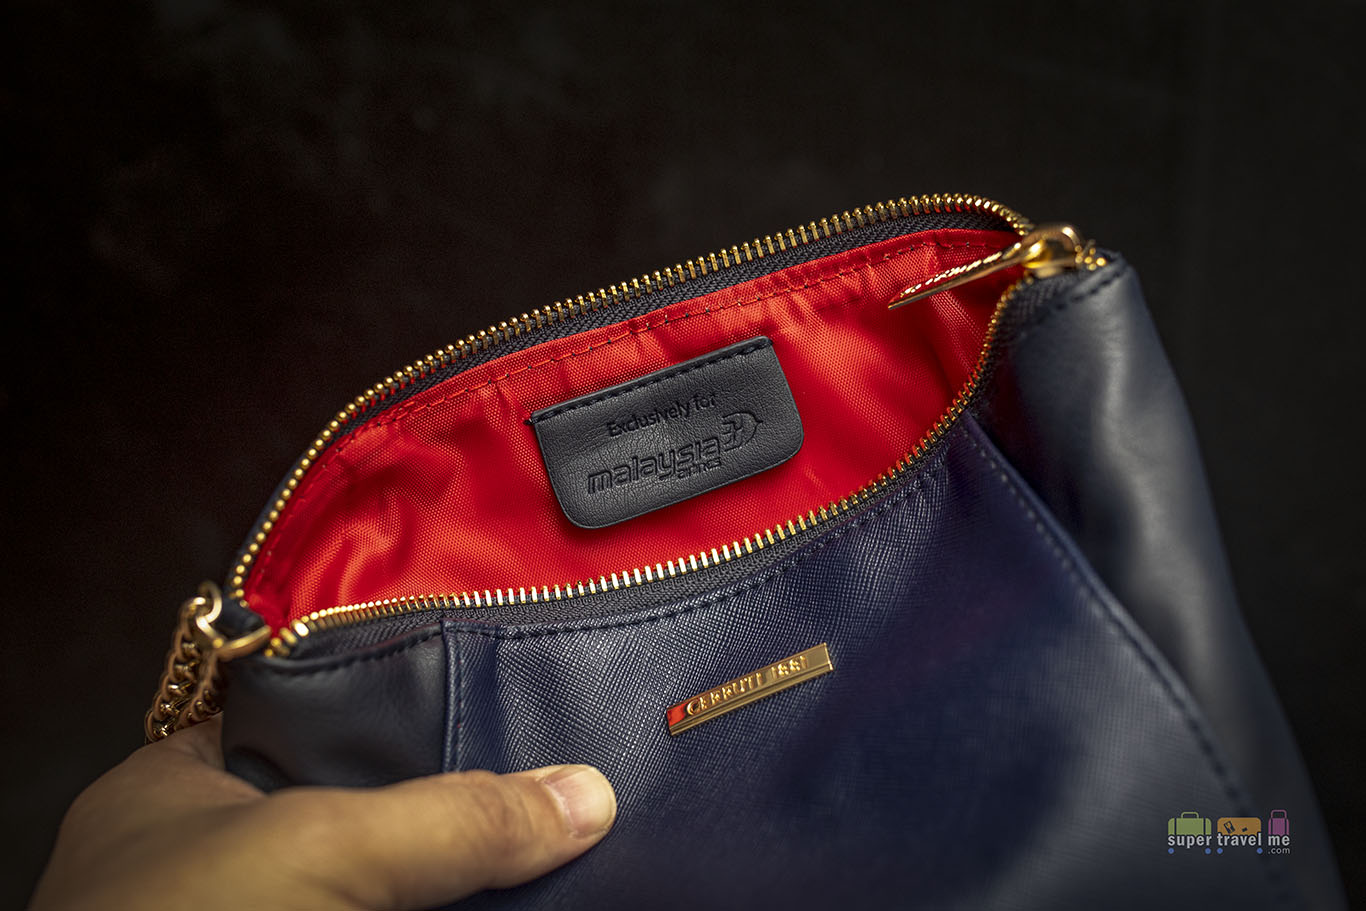 Inside the Malaysia Airlines First Class Amenity Kit pouch for women